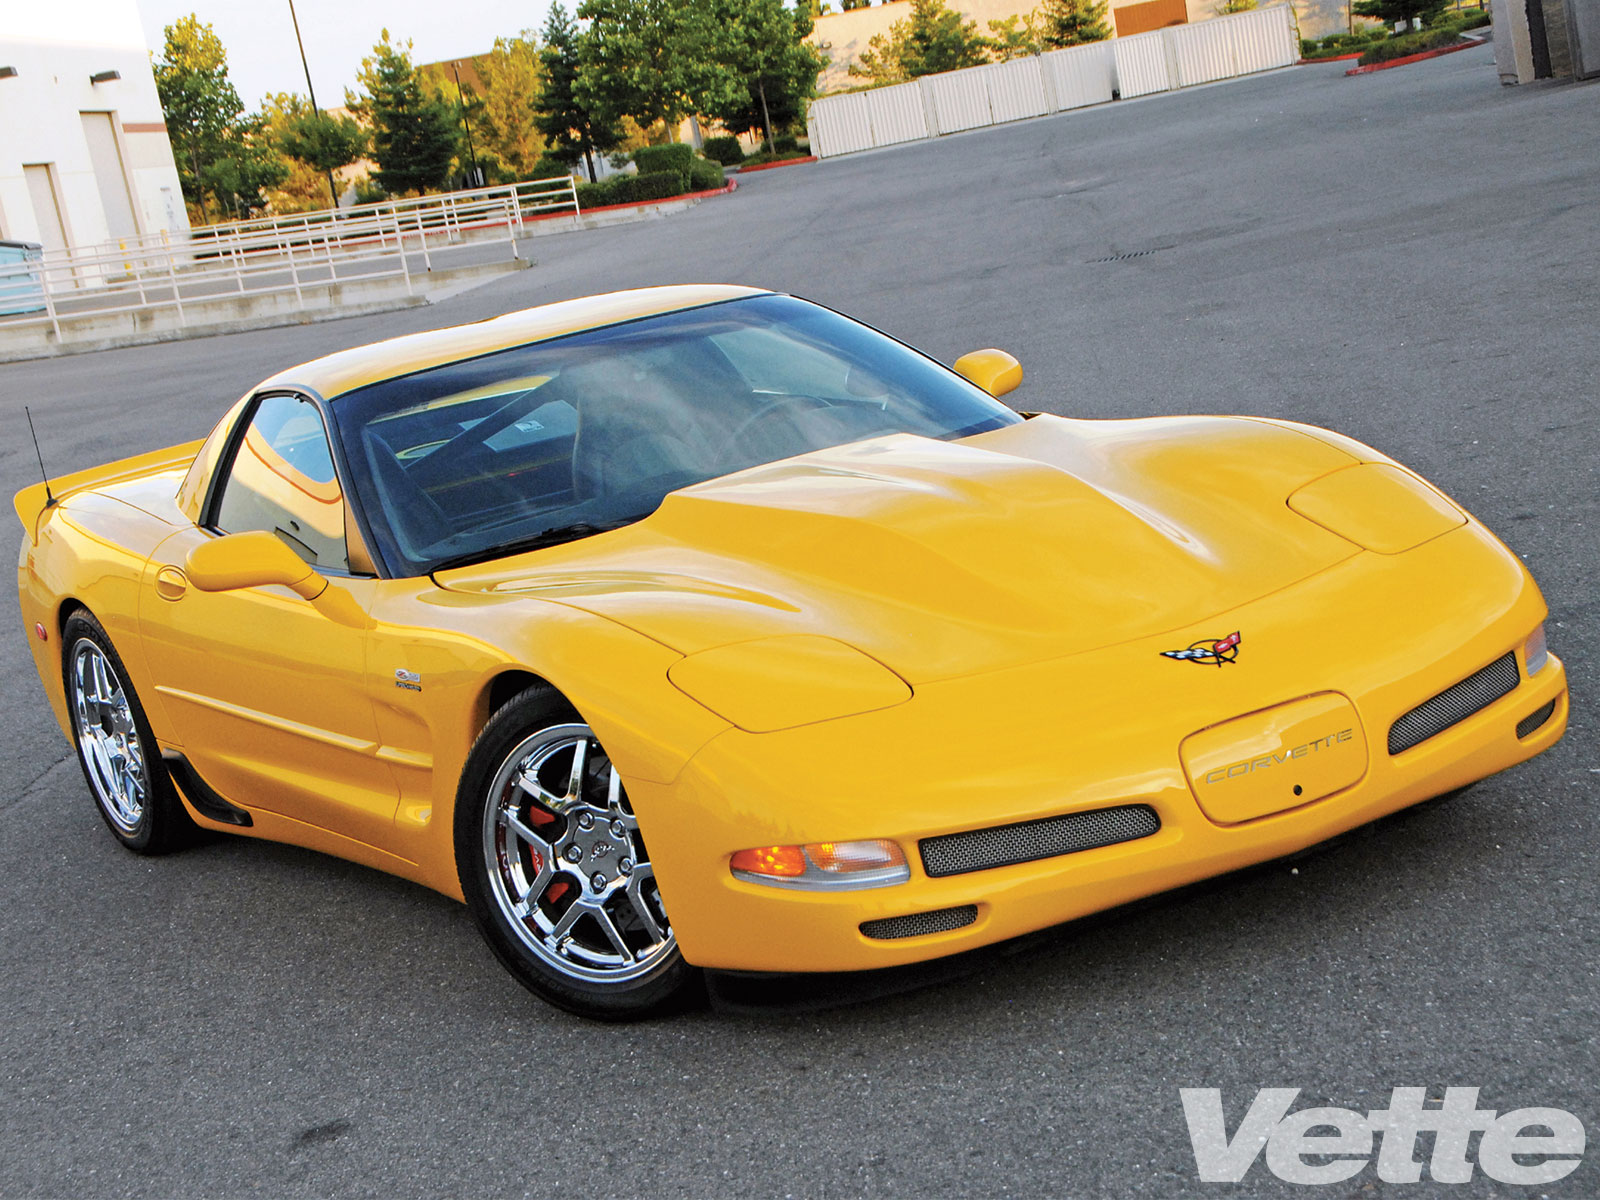 Vemp 1001 03 O Supercharged 2002 Chevrolet Corvette Full Body View